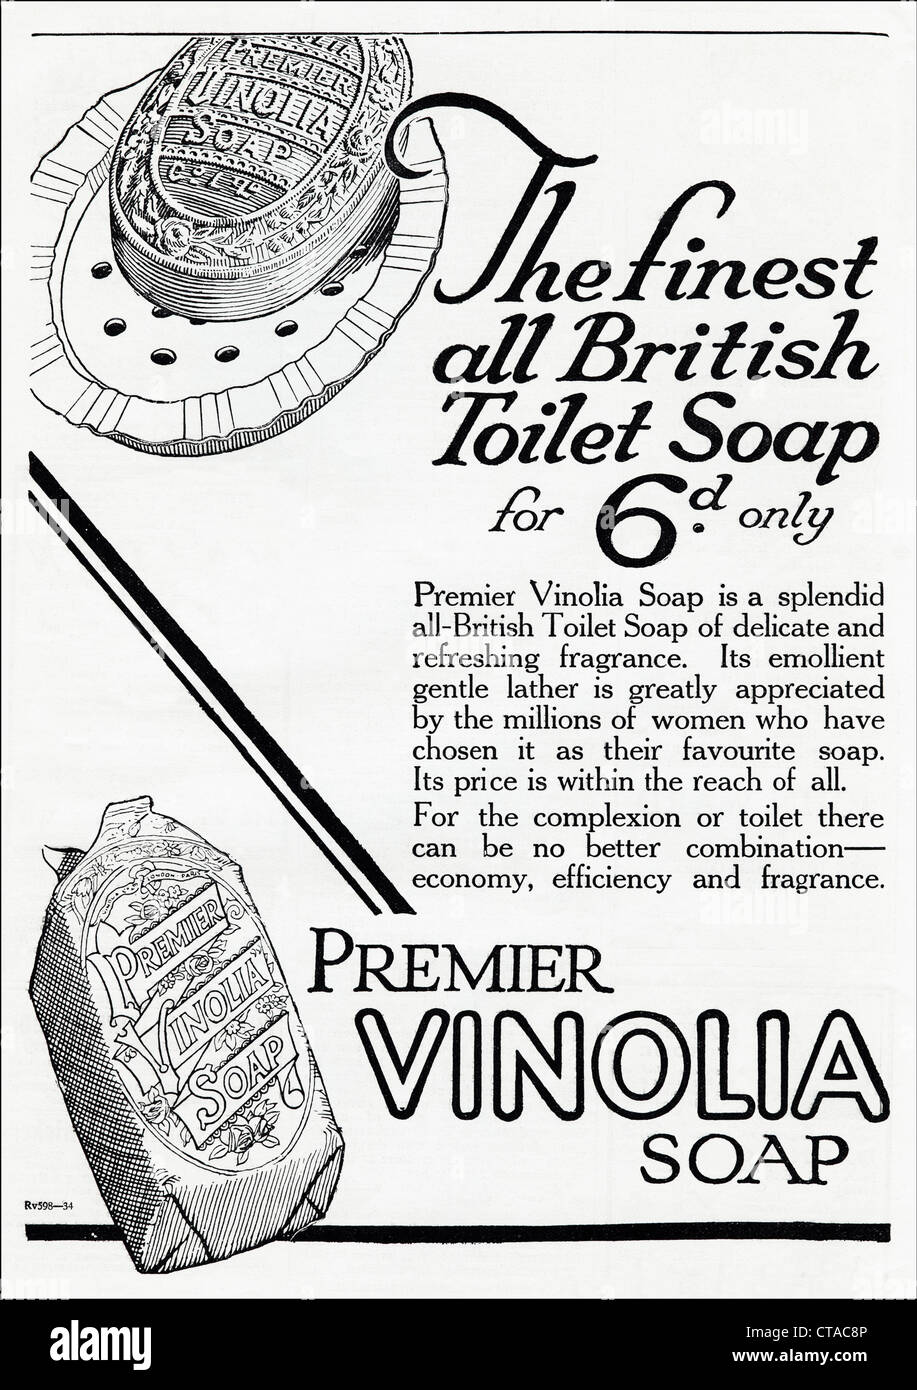 1920s Ads Uk Stock Photos & 1920s Ads Uk Stock Images - Page